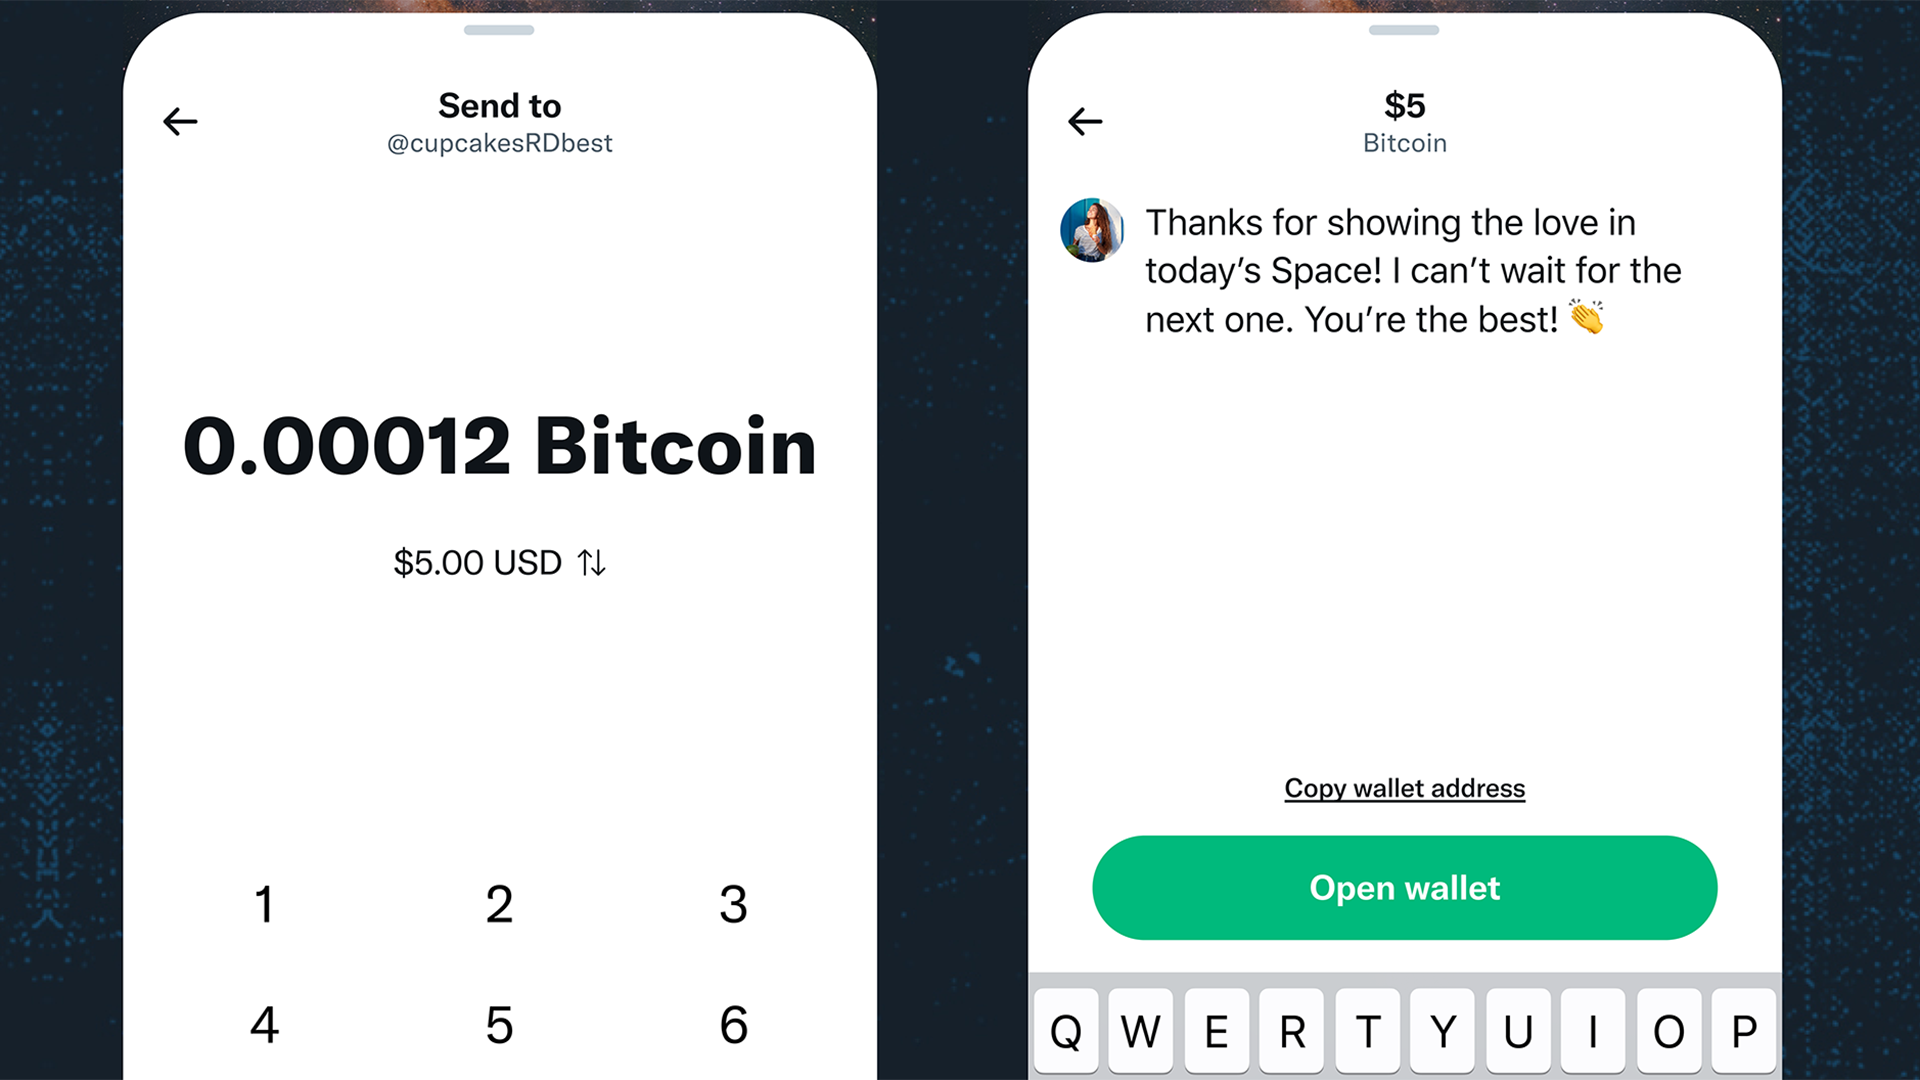 Twitter will let users send and receive Bitcoin tips